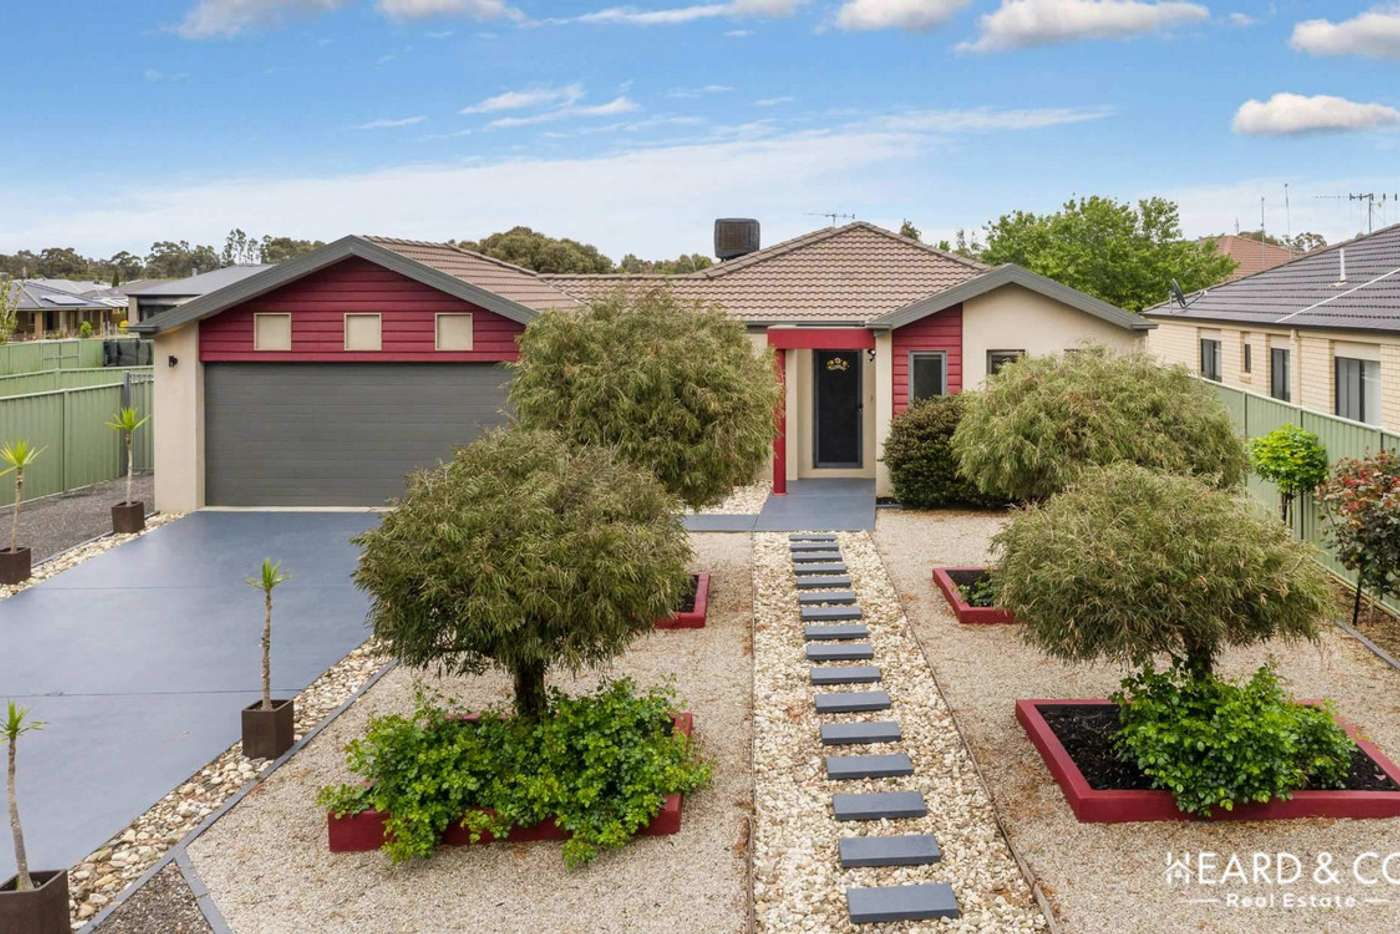 Main view of Homely house listing, 22 Clydebank Court, Strathfieldsaye VIC 3551